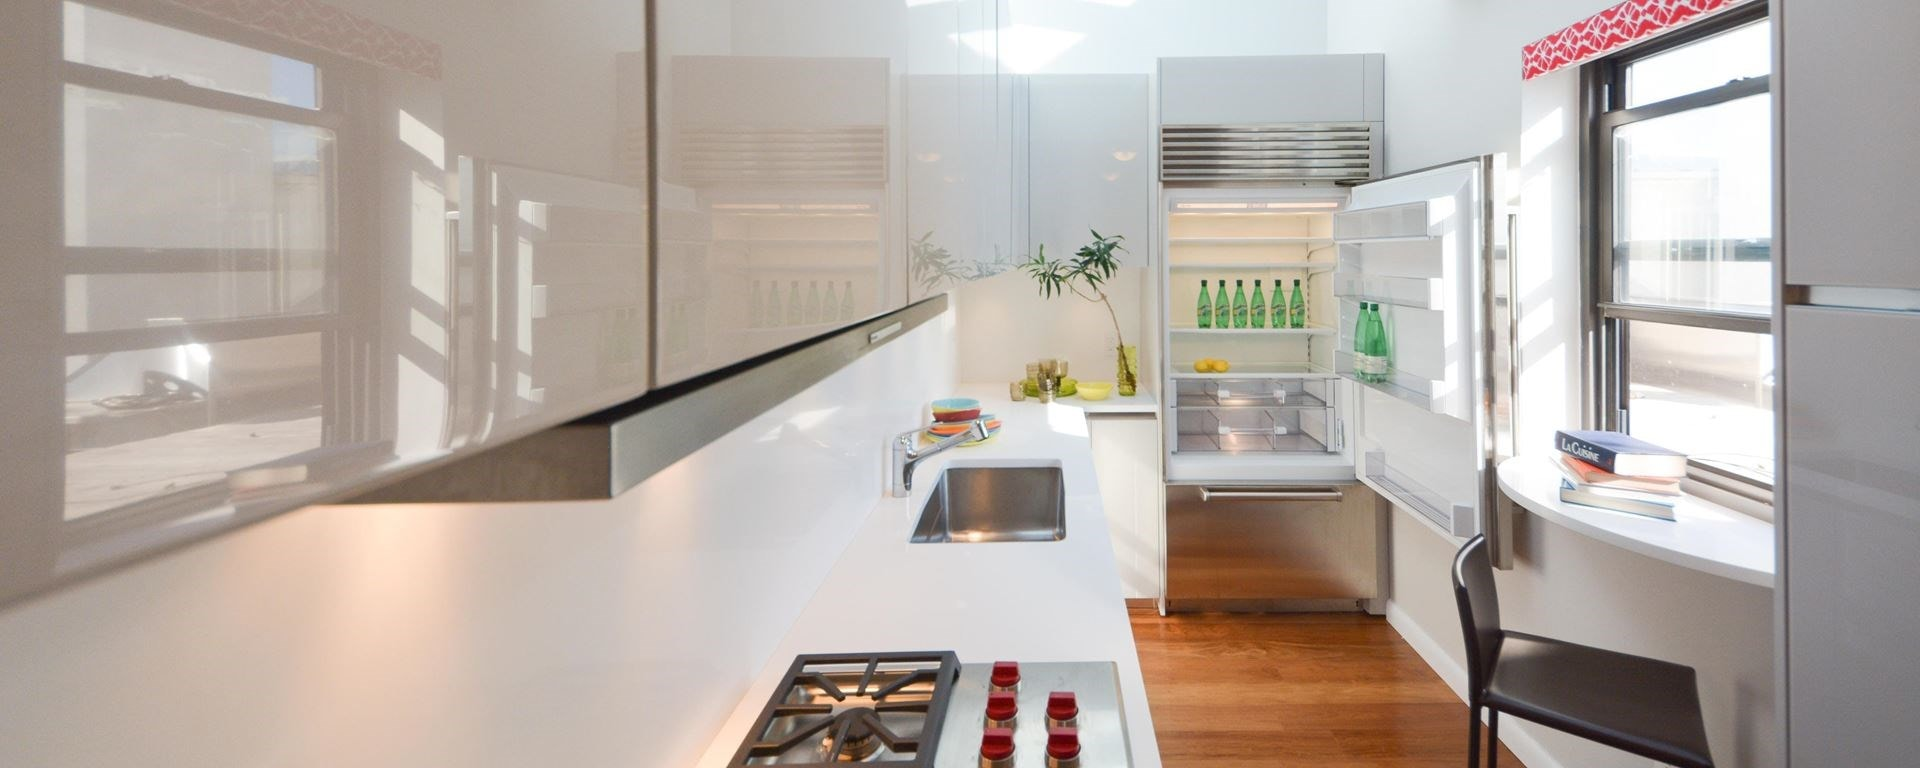 "Clean and crisp kitchen design featuring the Sub-Zero 36"" Classic Over and Under Refrigerator Freezer in a galley style white kitchen"